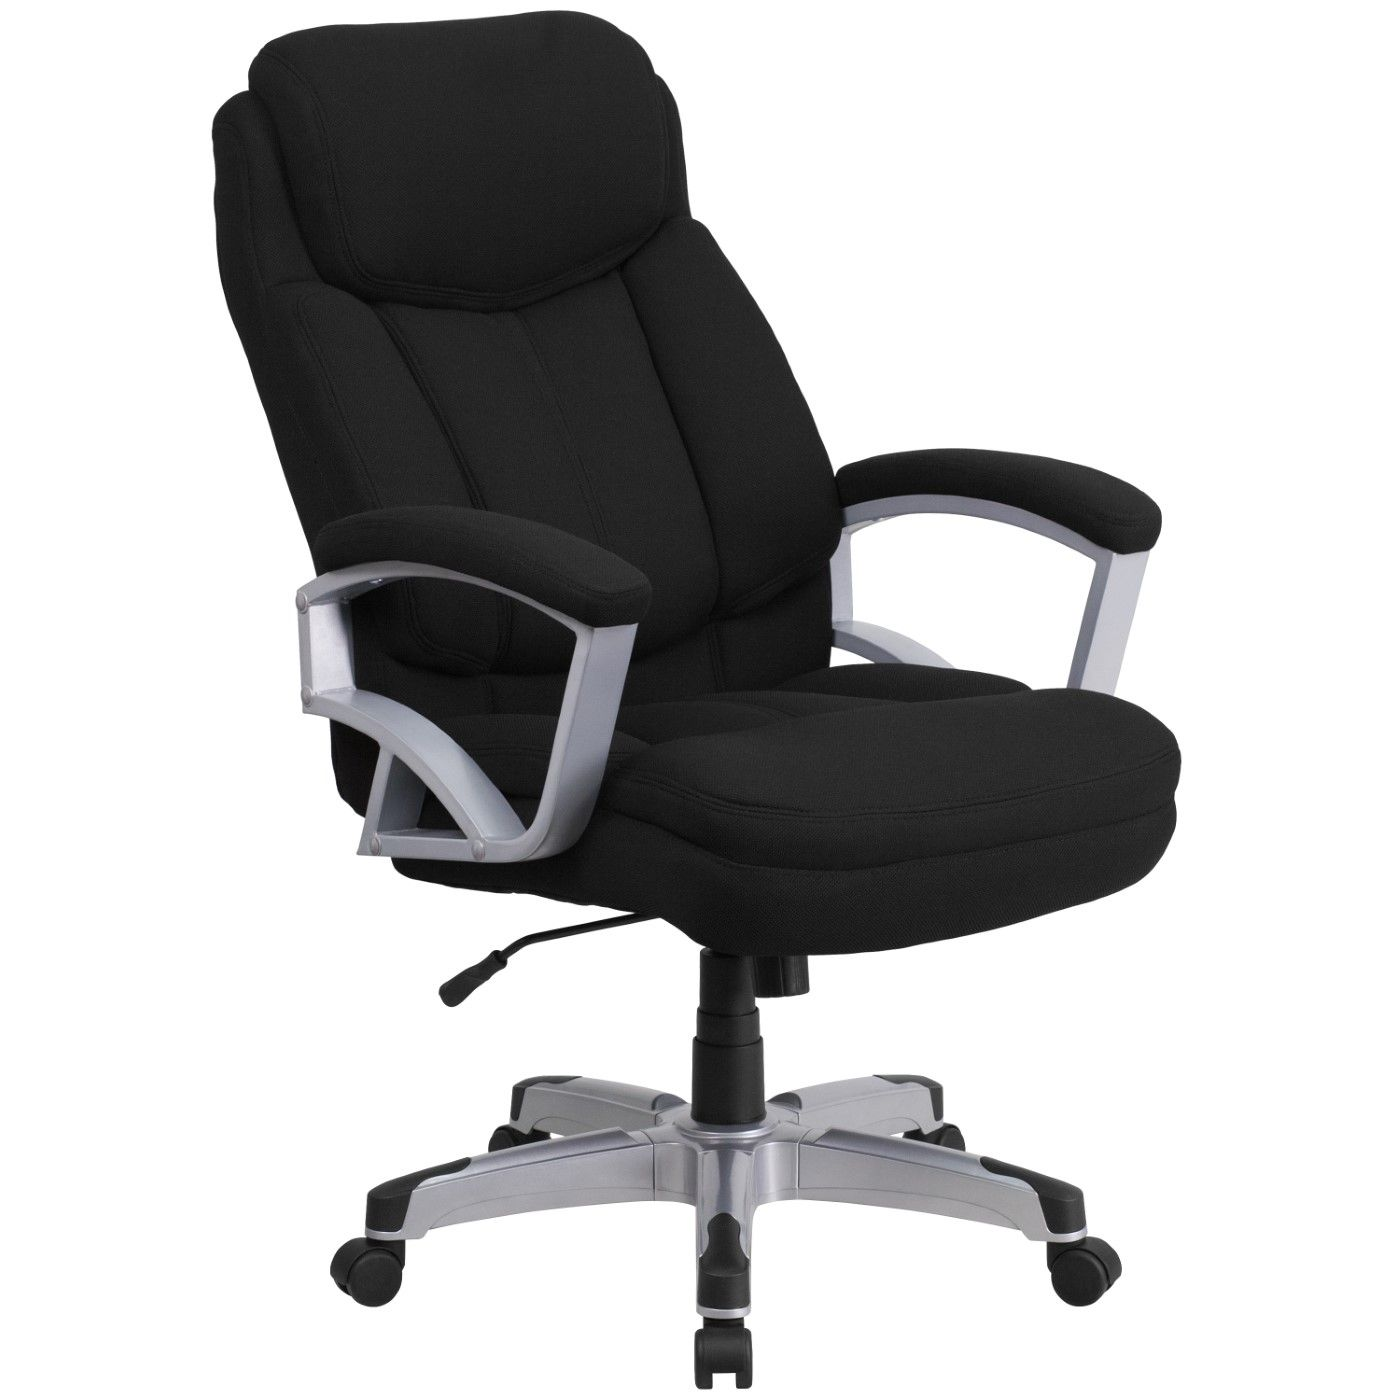 TOUGH ENOUGH Series Big & Tall 500 lb. Rated Black Fabric Executive Swivel Ergonomic Office Chair with Arms